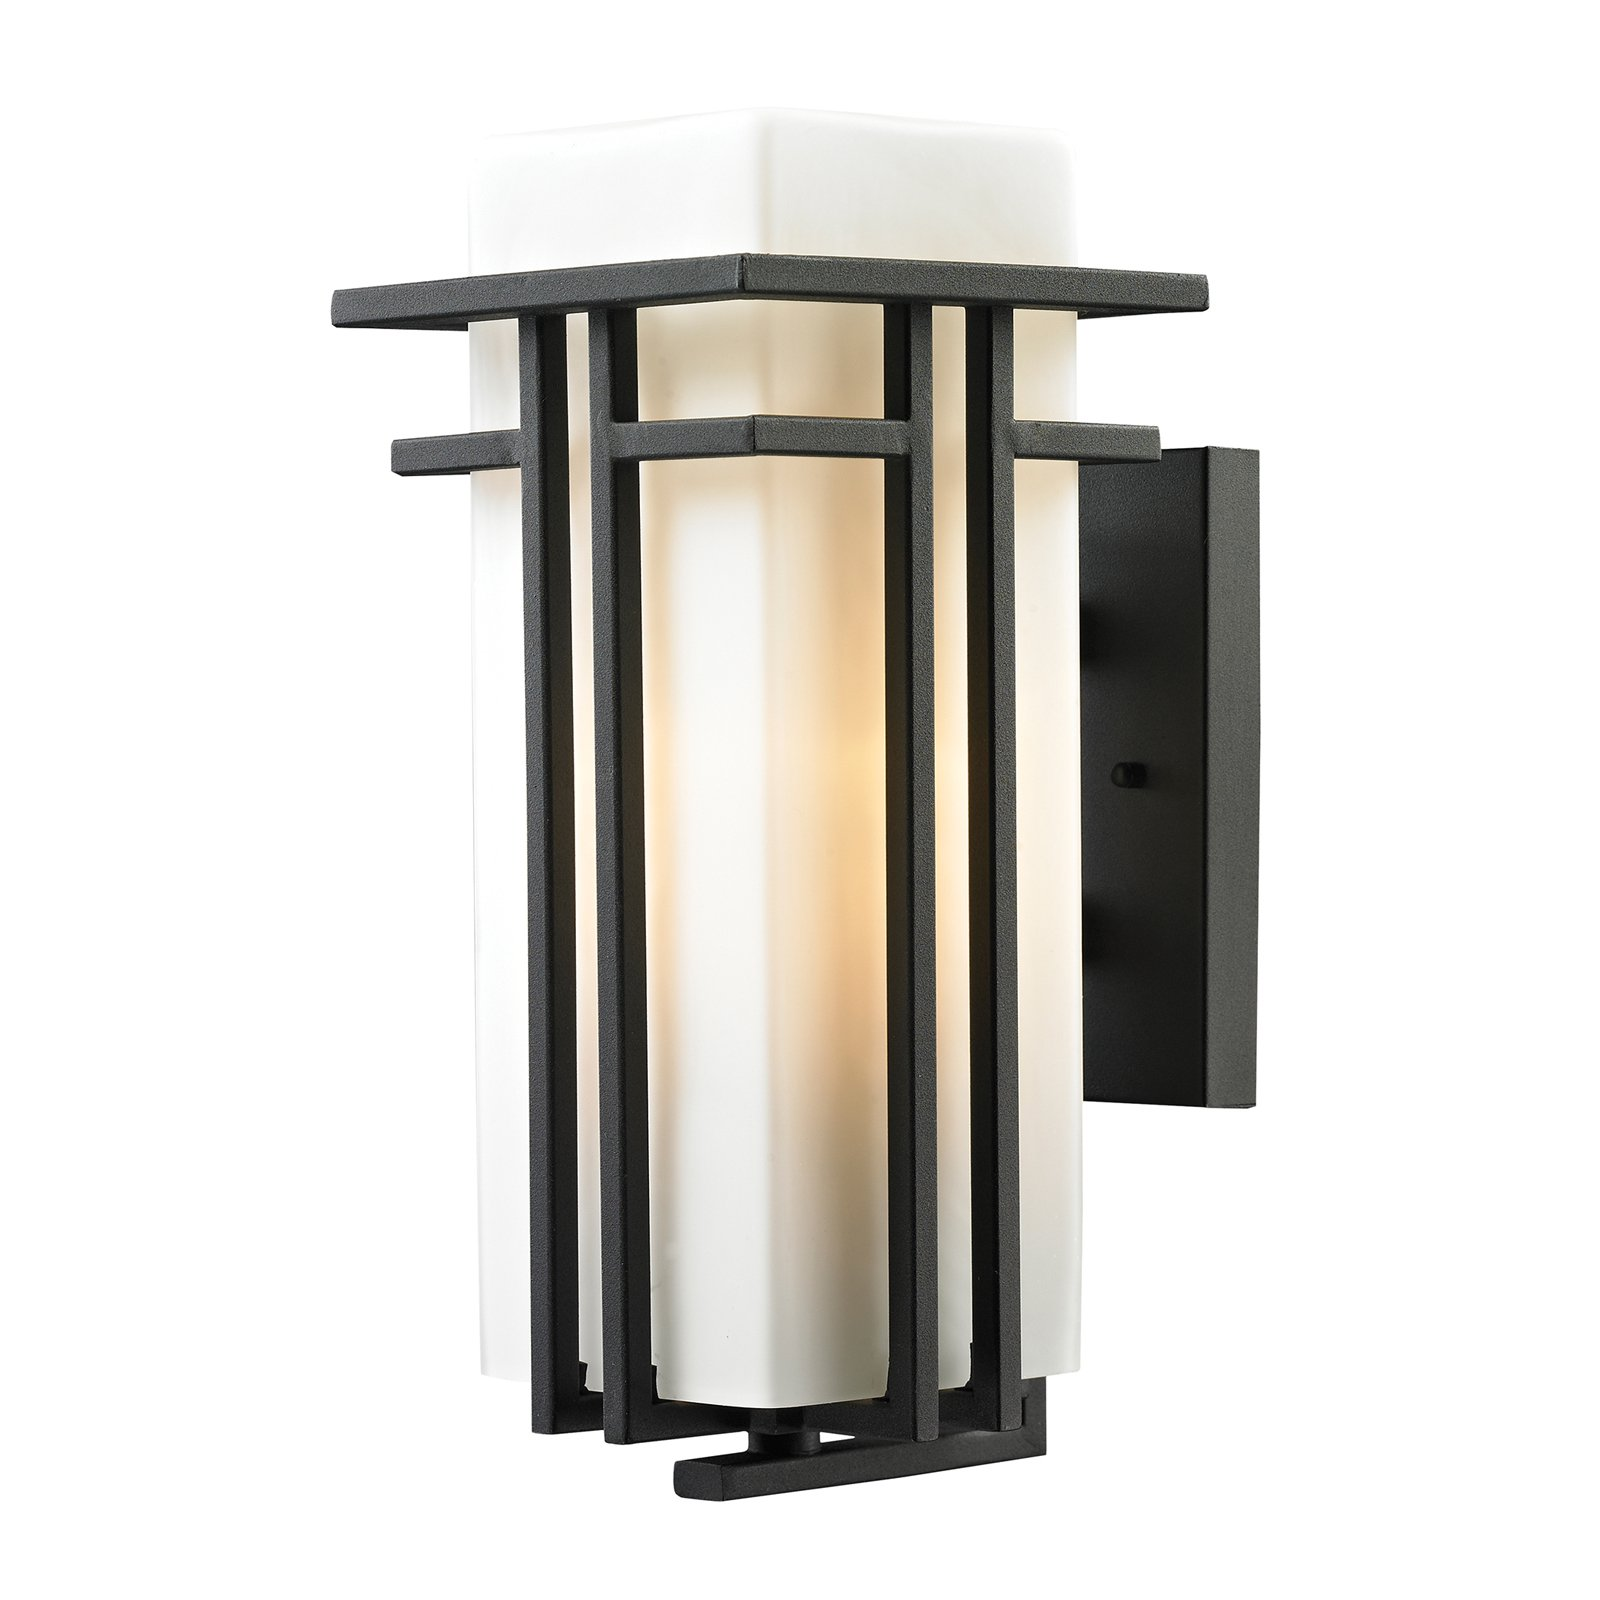 ELK Lighting Croftwell 4508 1-Light Outdoor Wall Sconce